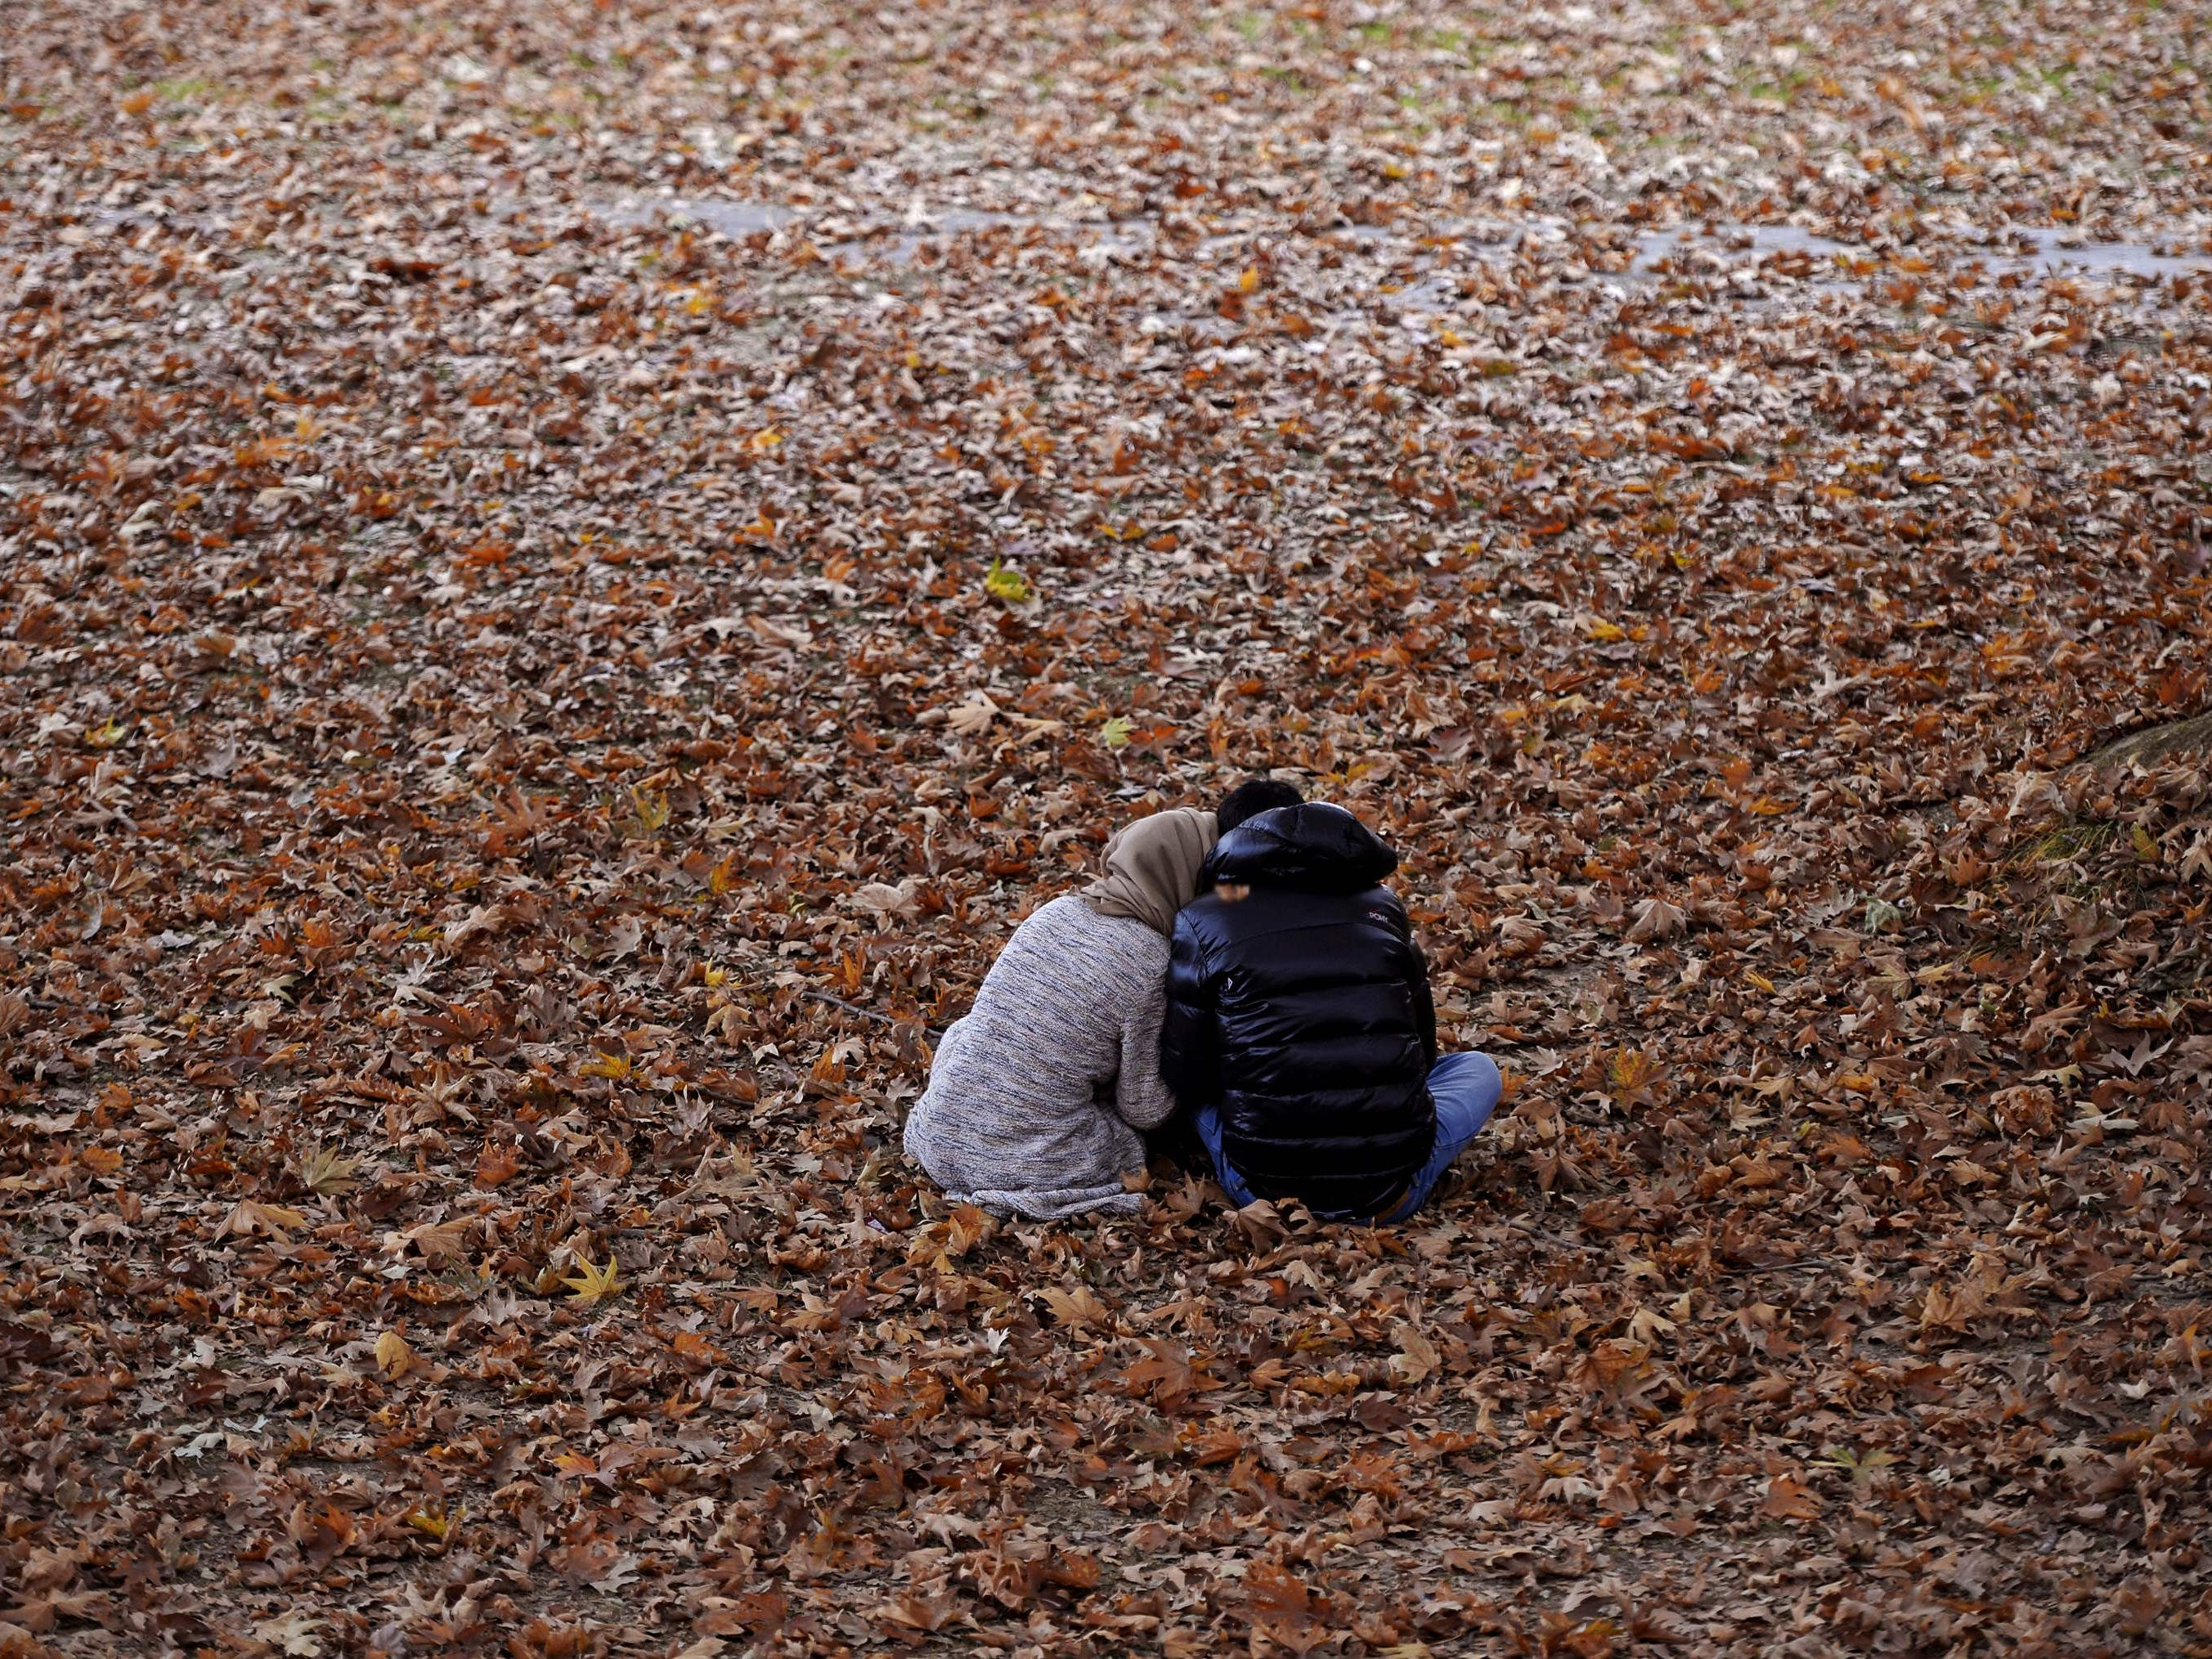 A Kashmiri couple sits amongst tree leaves during the autumn season in Srinagar, India, on Nov. 1, 2018.